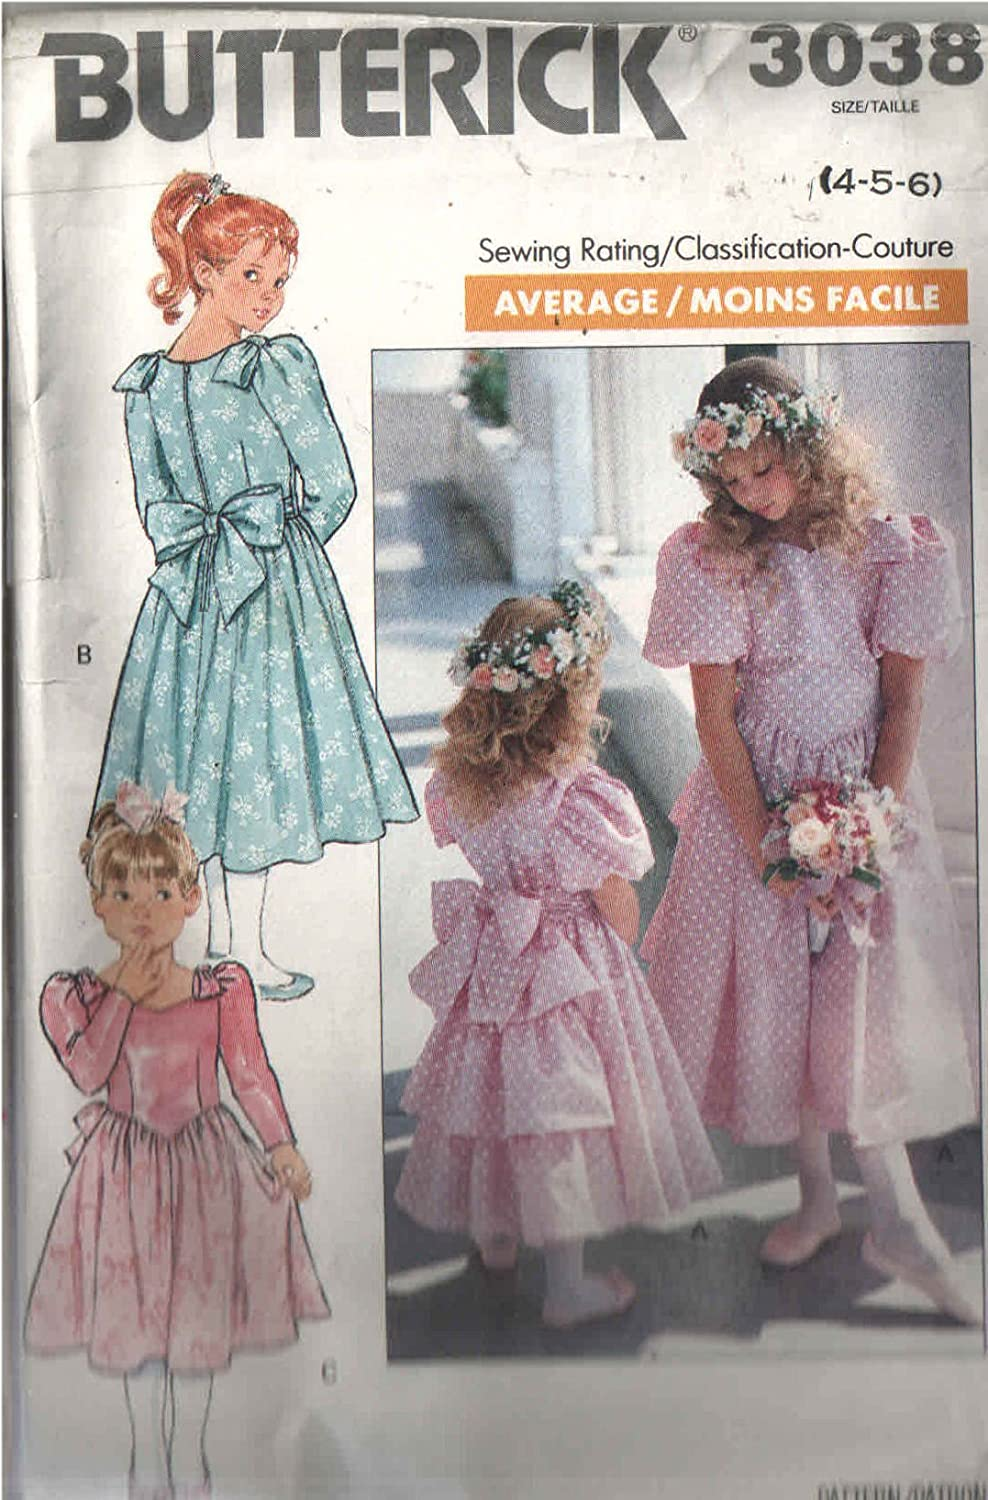 Butterick 3038 Girls Sewing Pattern for Special Occasion Dresses with Triple Fuffled Back Panel or Shoulder Bows Back TIE Sash Dresses with Sleeve Choices